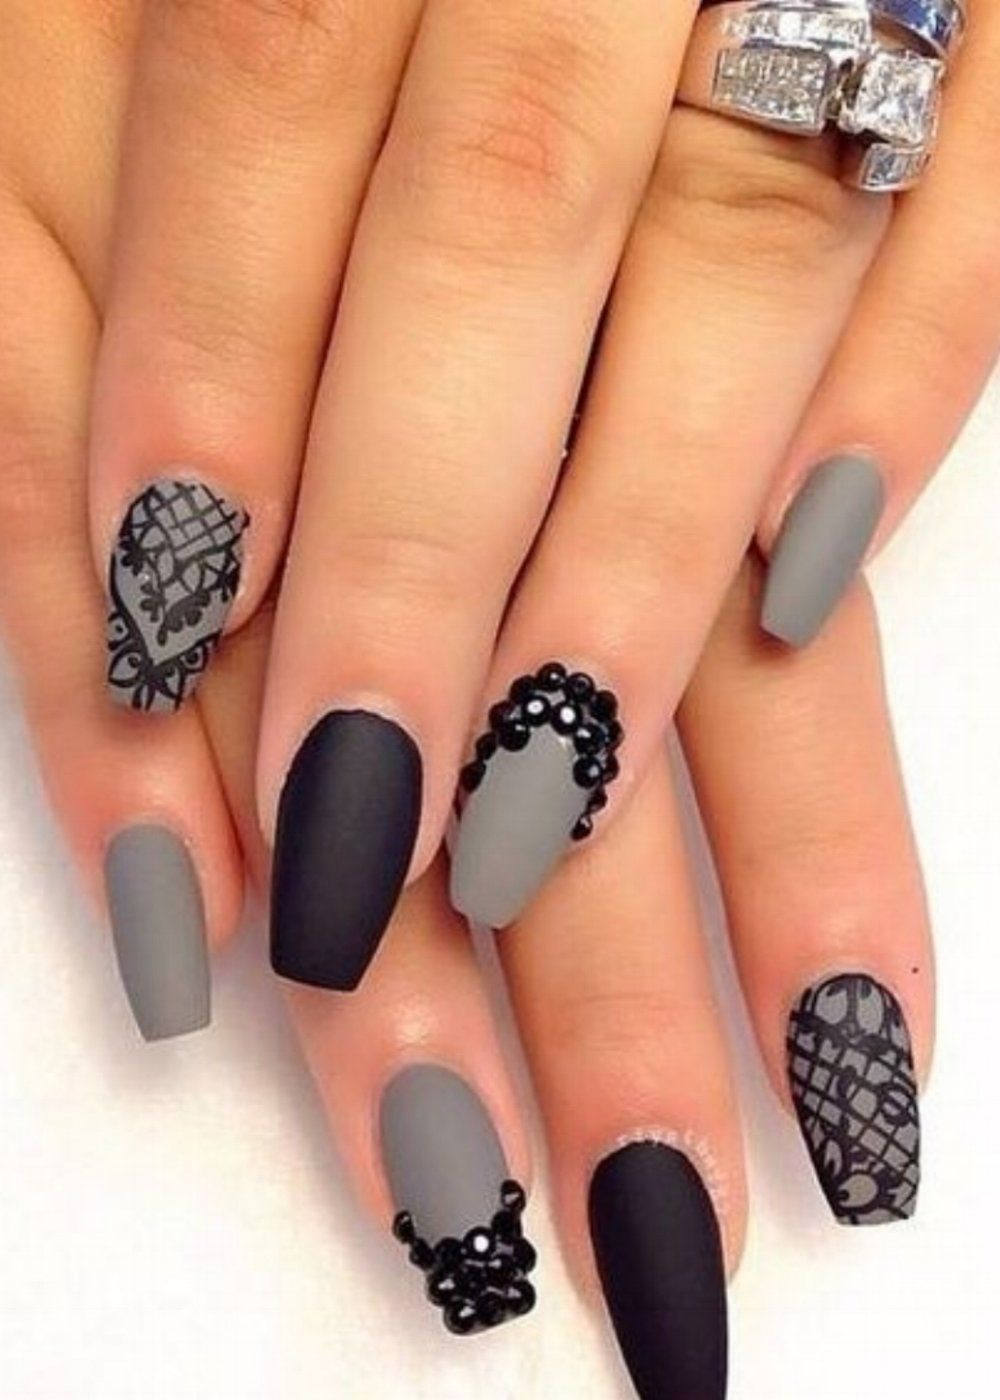 Matte black + grey #nails #nailart - 💅 101 Trending Nail Art Ideas Gray Nails, Simple Nail Designs And